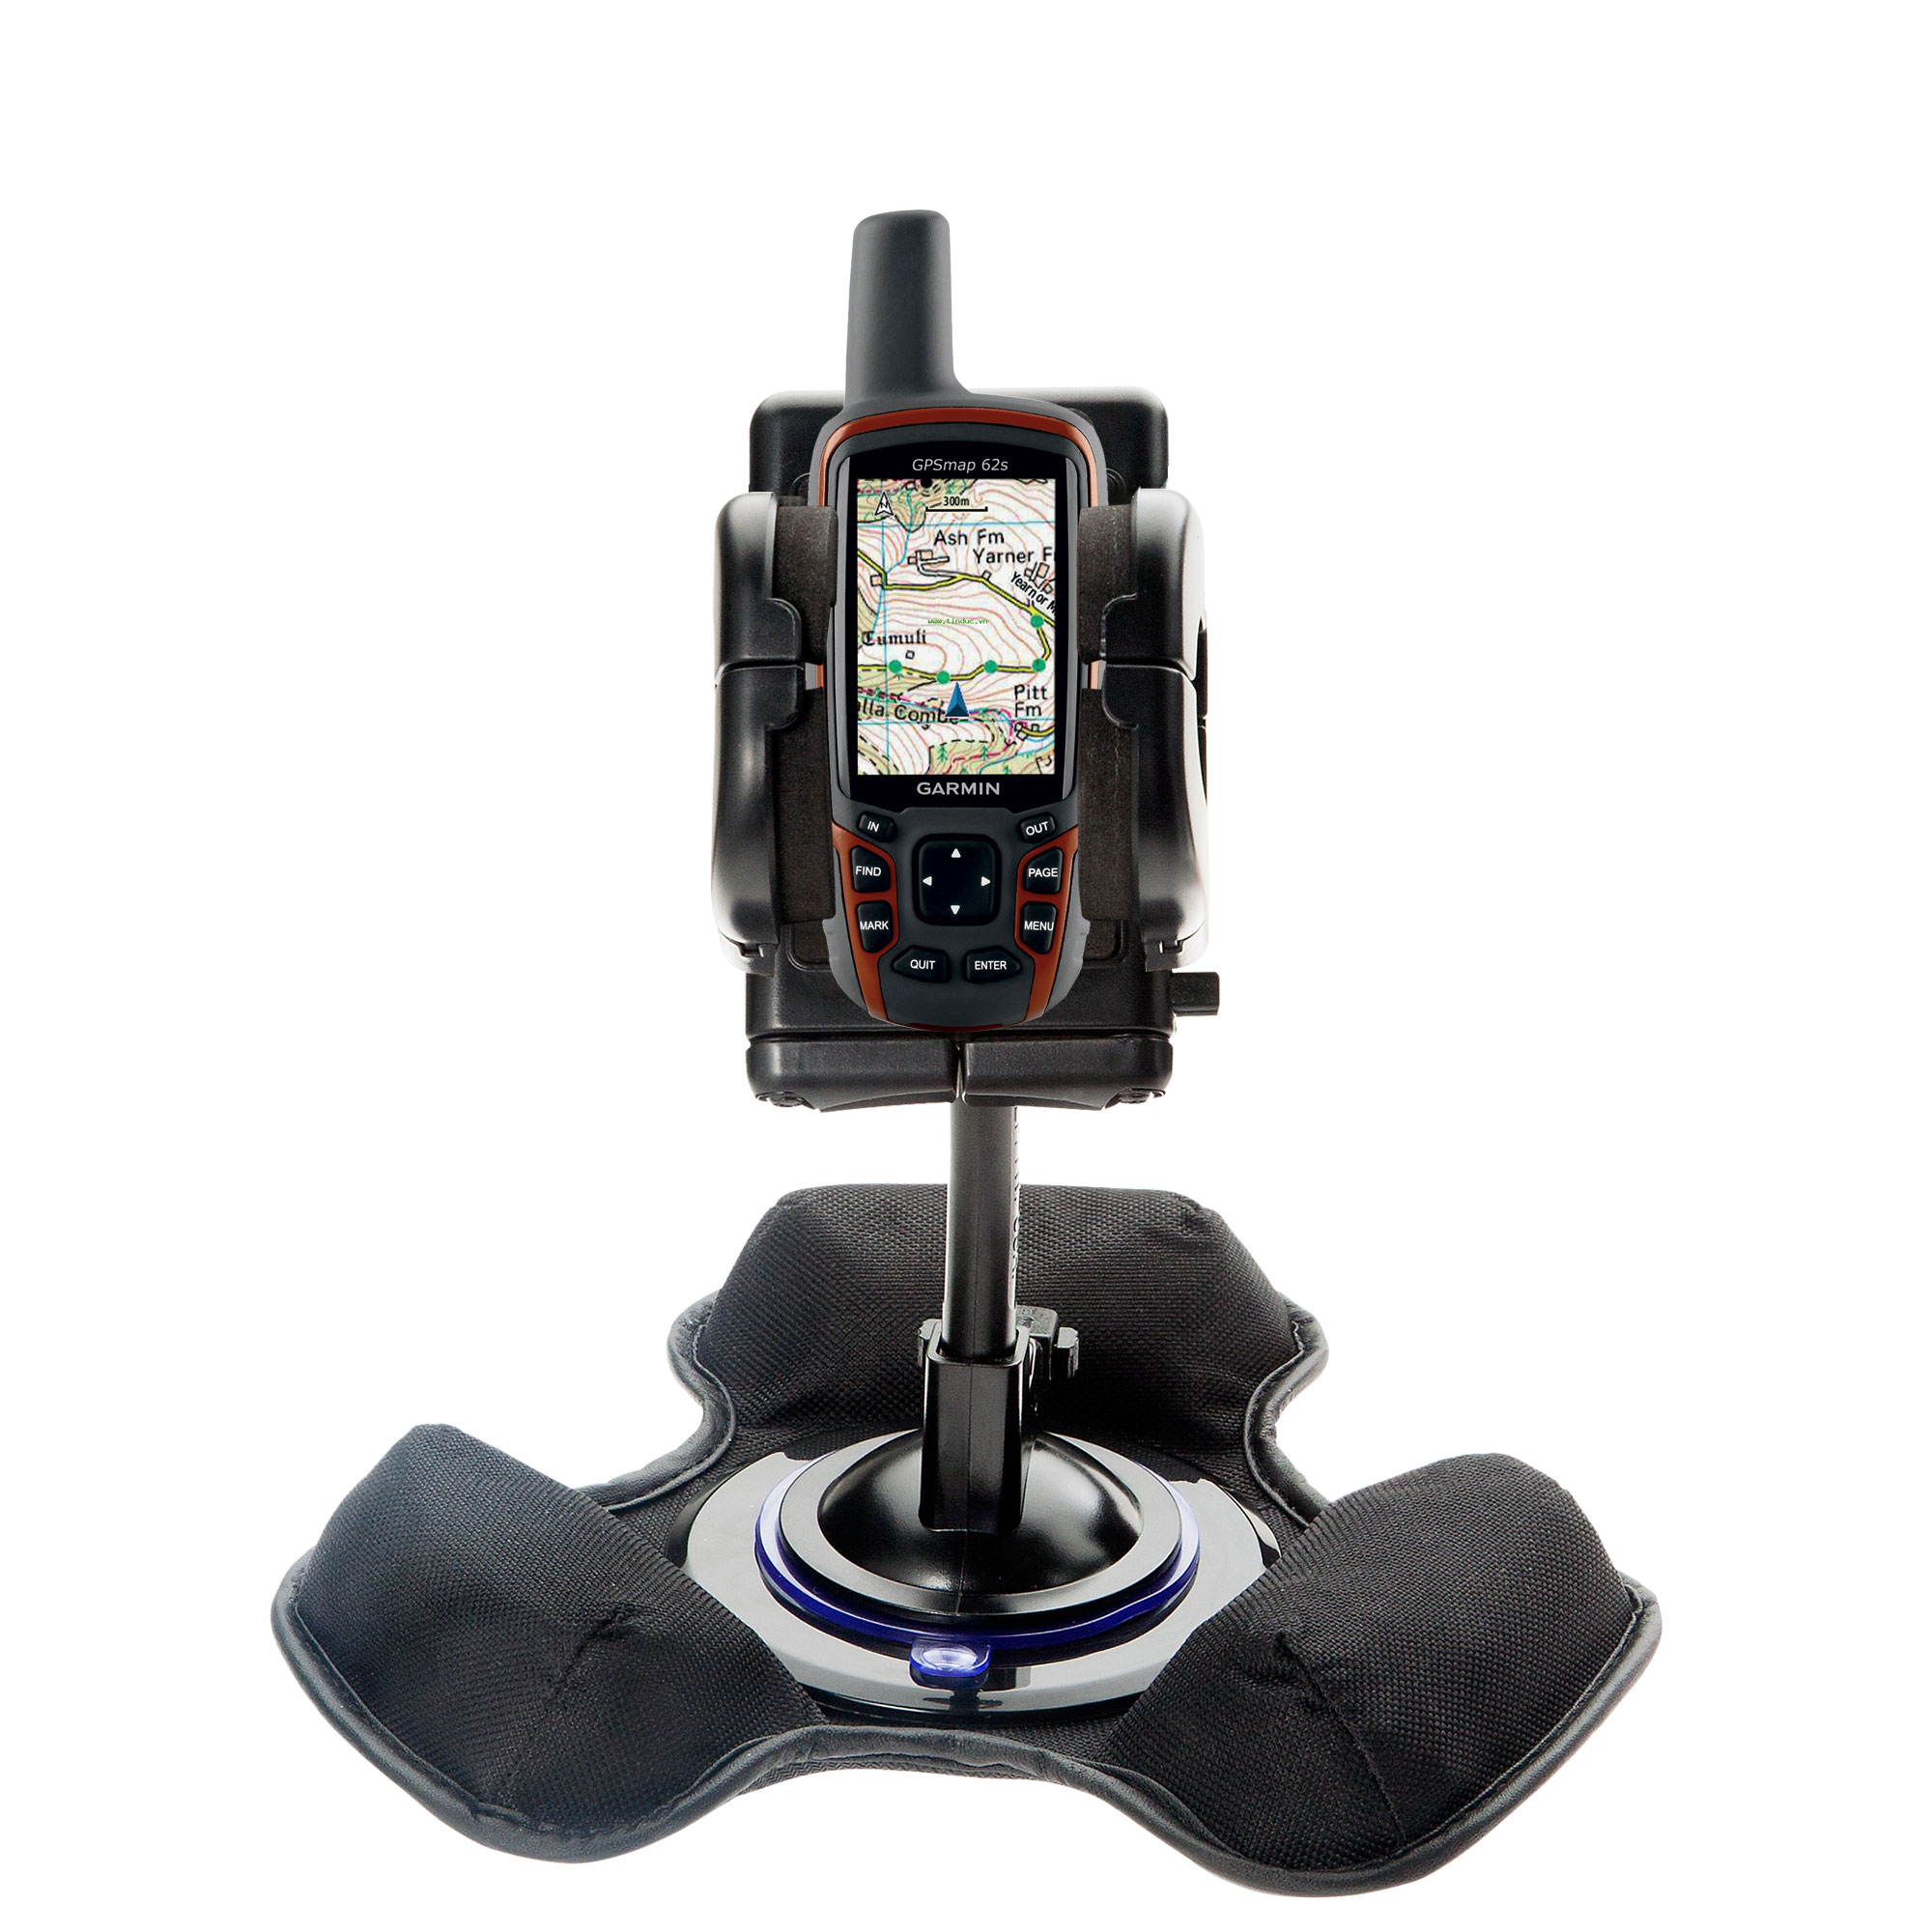 Dash and Windshield Holder compatible with the Garmin  GPSMap 62